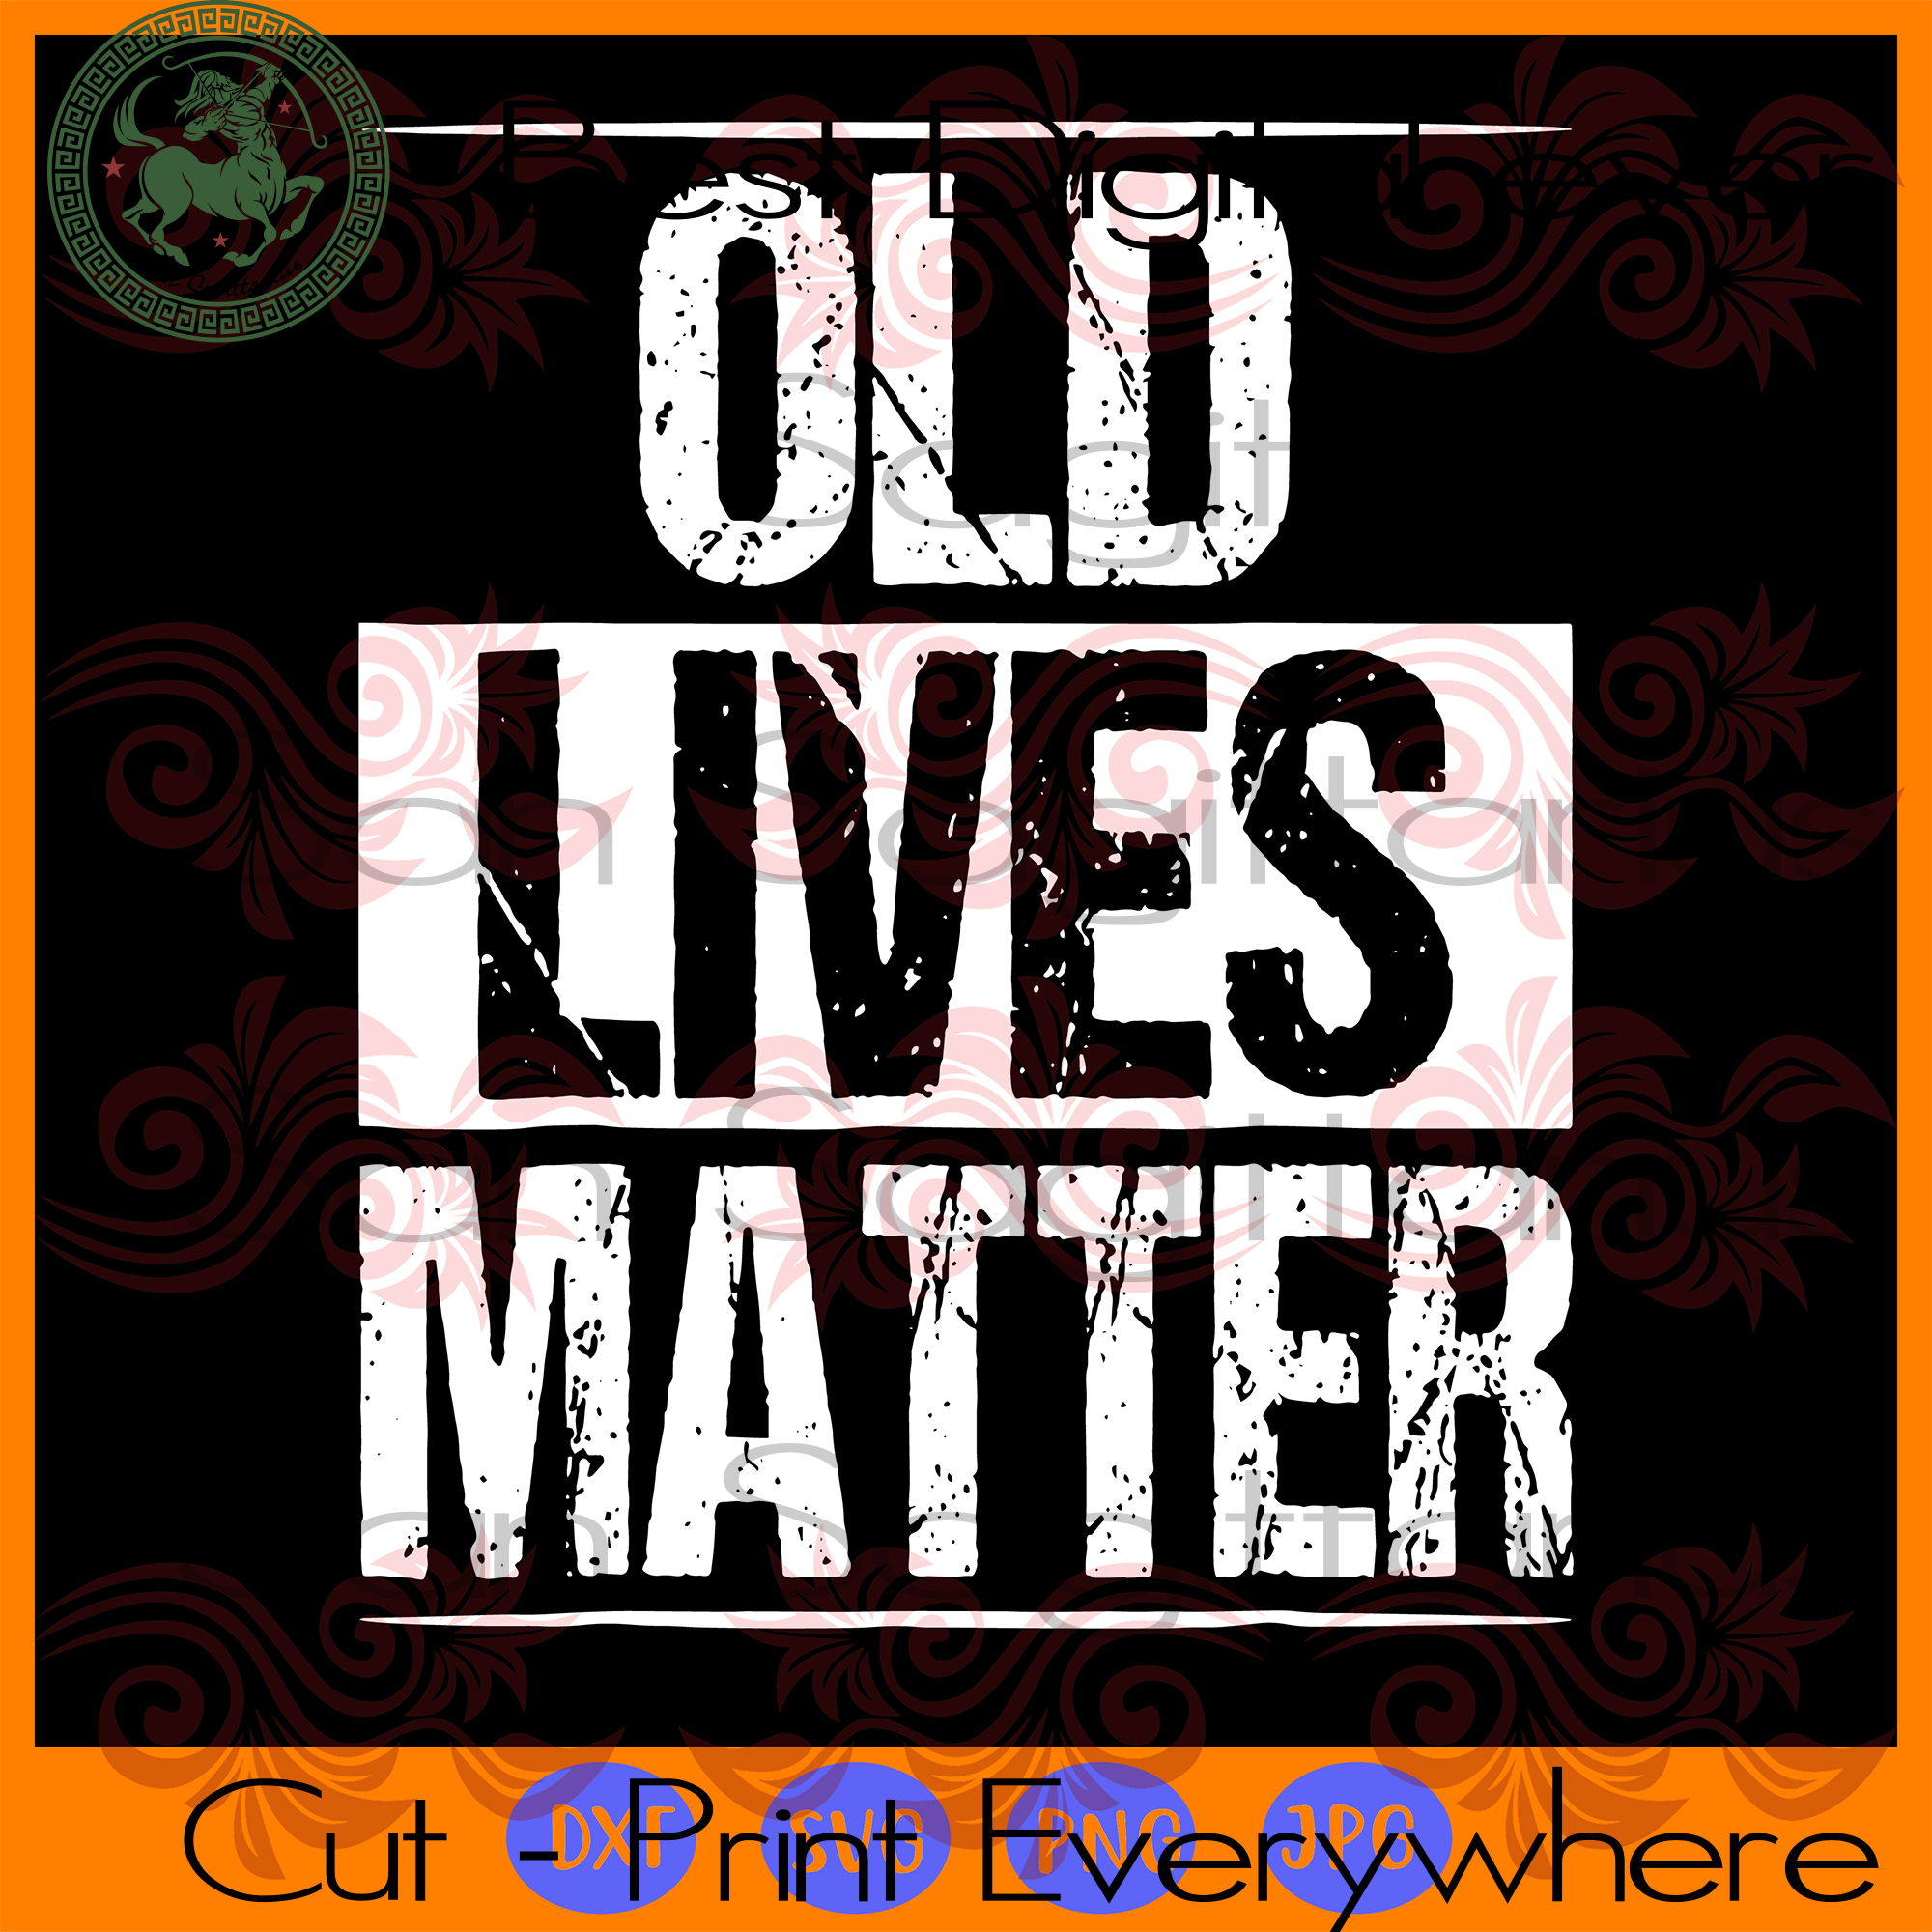 Old lives Matter SVG Files For Silhouette Instant Download | San Sagittarius